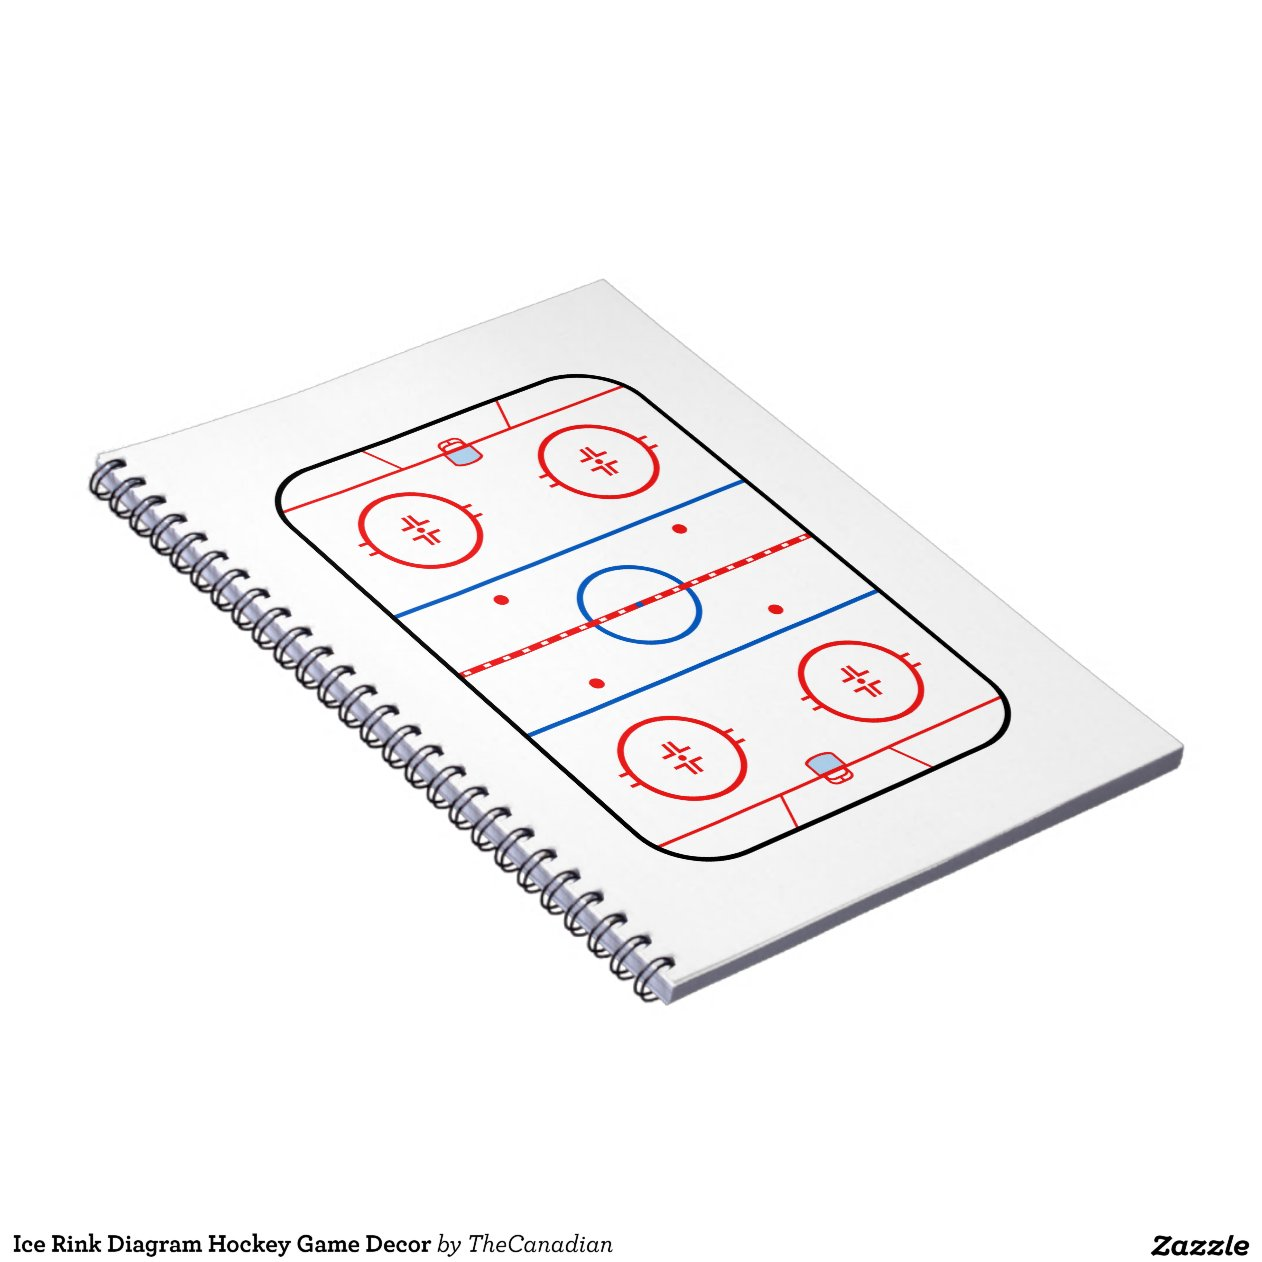 hockey rink diagram 13 pin trailer socket wiring uk ice game companion note book zazzle